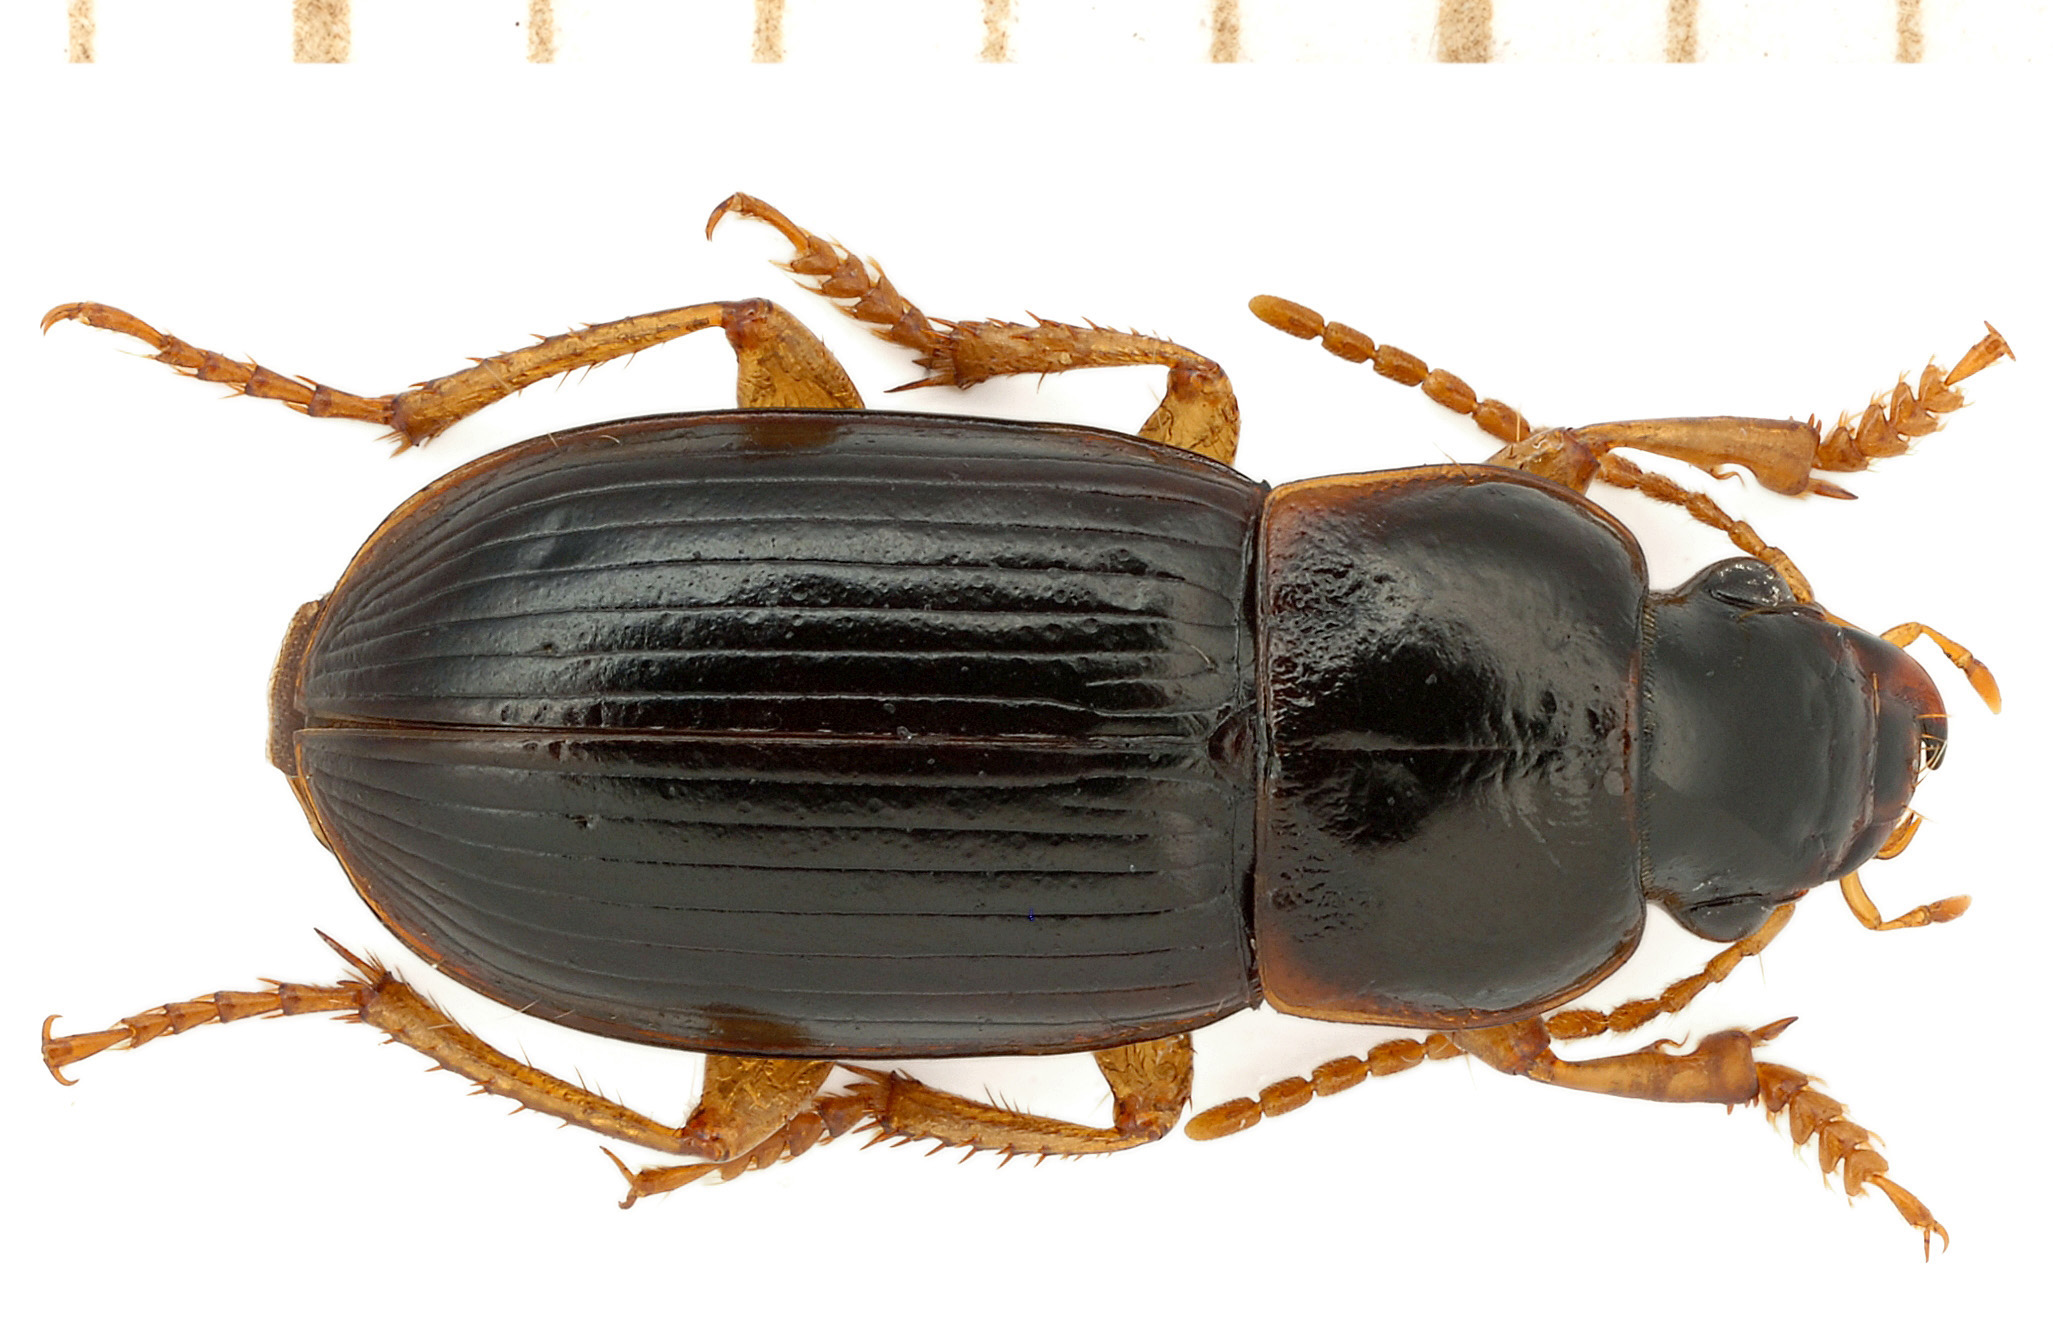 Harpalus luteicornis (Duftschmid, 1812)